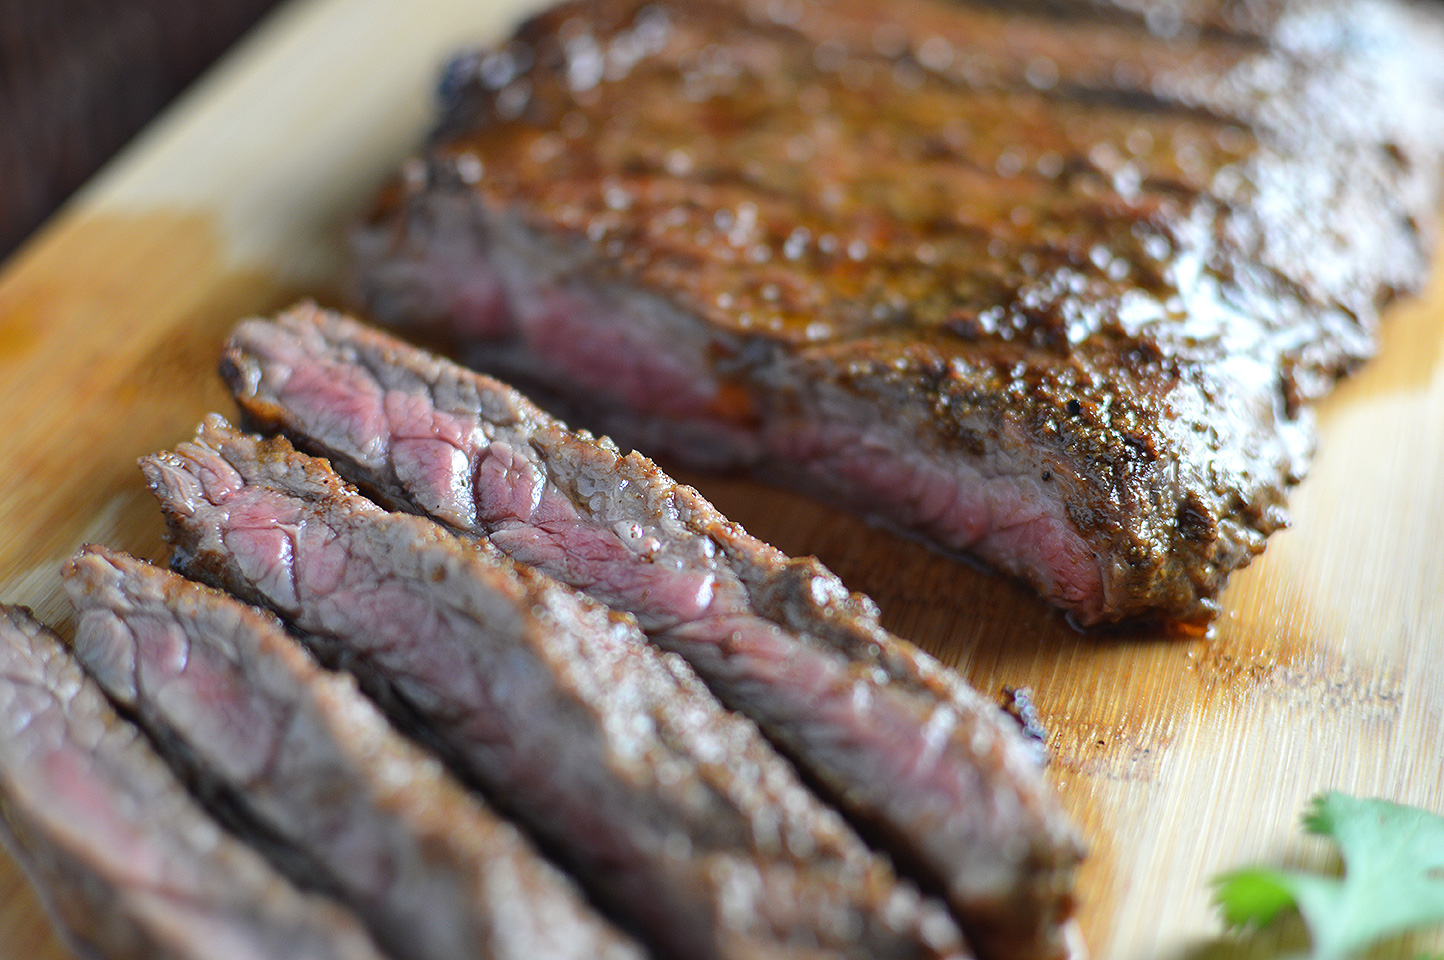 Closeup on the delicious Citrus Marinated Skirt Steaks served on a wooden board